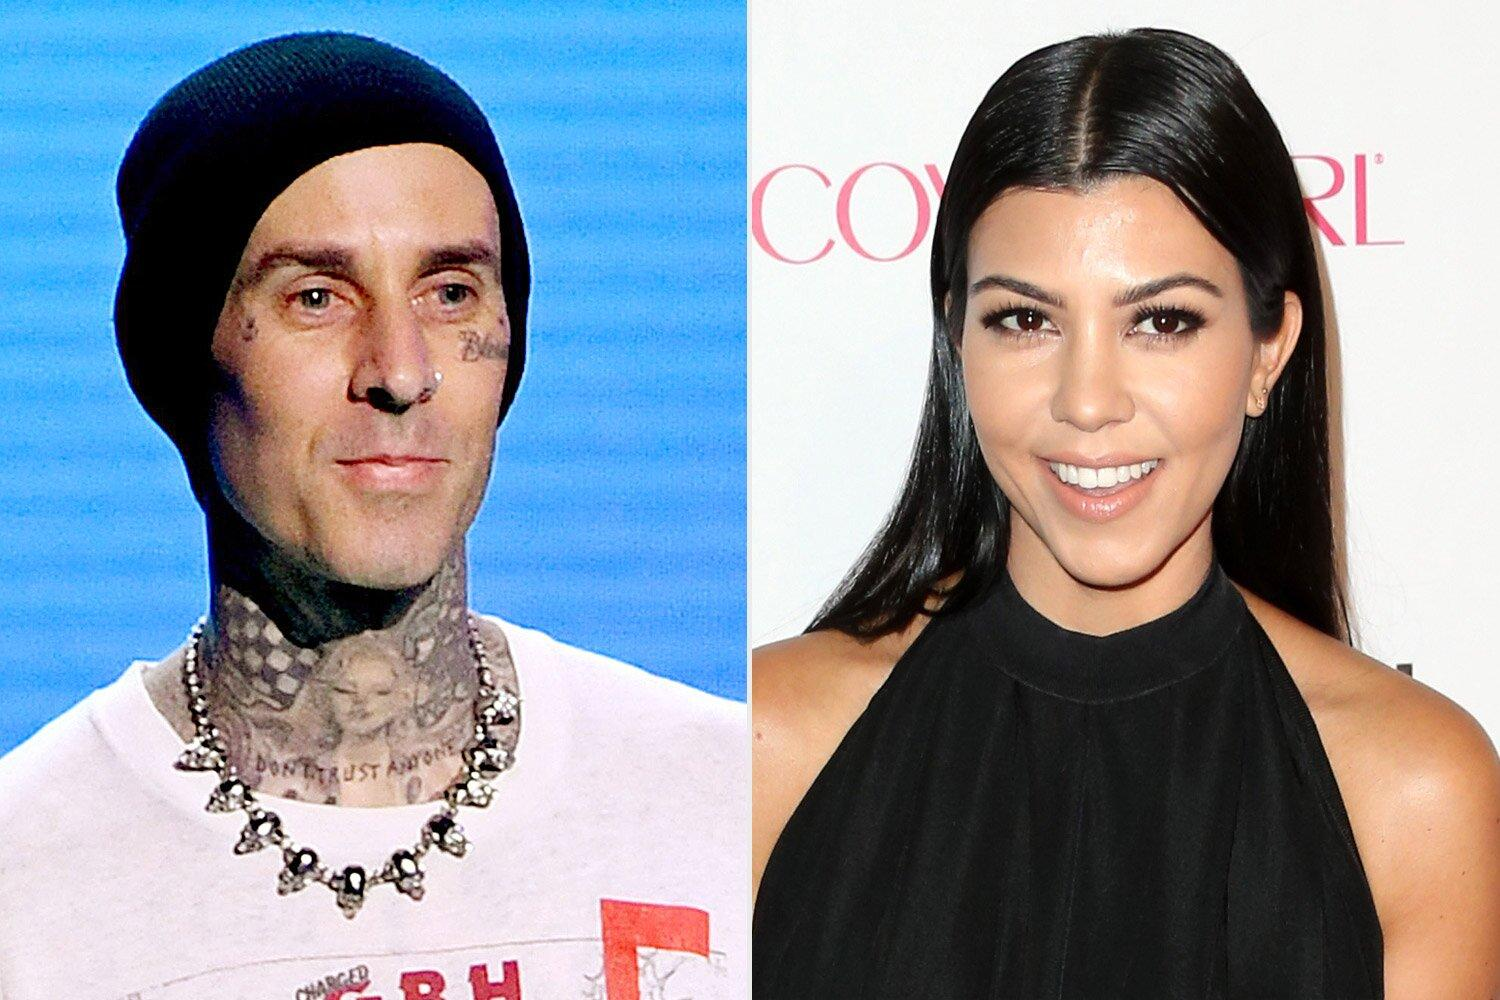 Travis Barker and Kourtney Kardashian Spend Easter with Her Family, Kris Jenner Celebrates with Golf Gifts